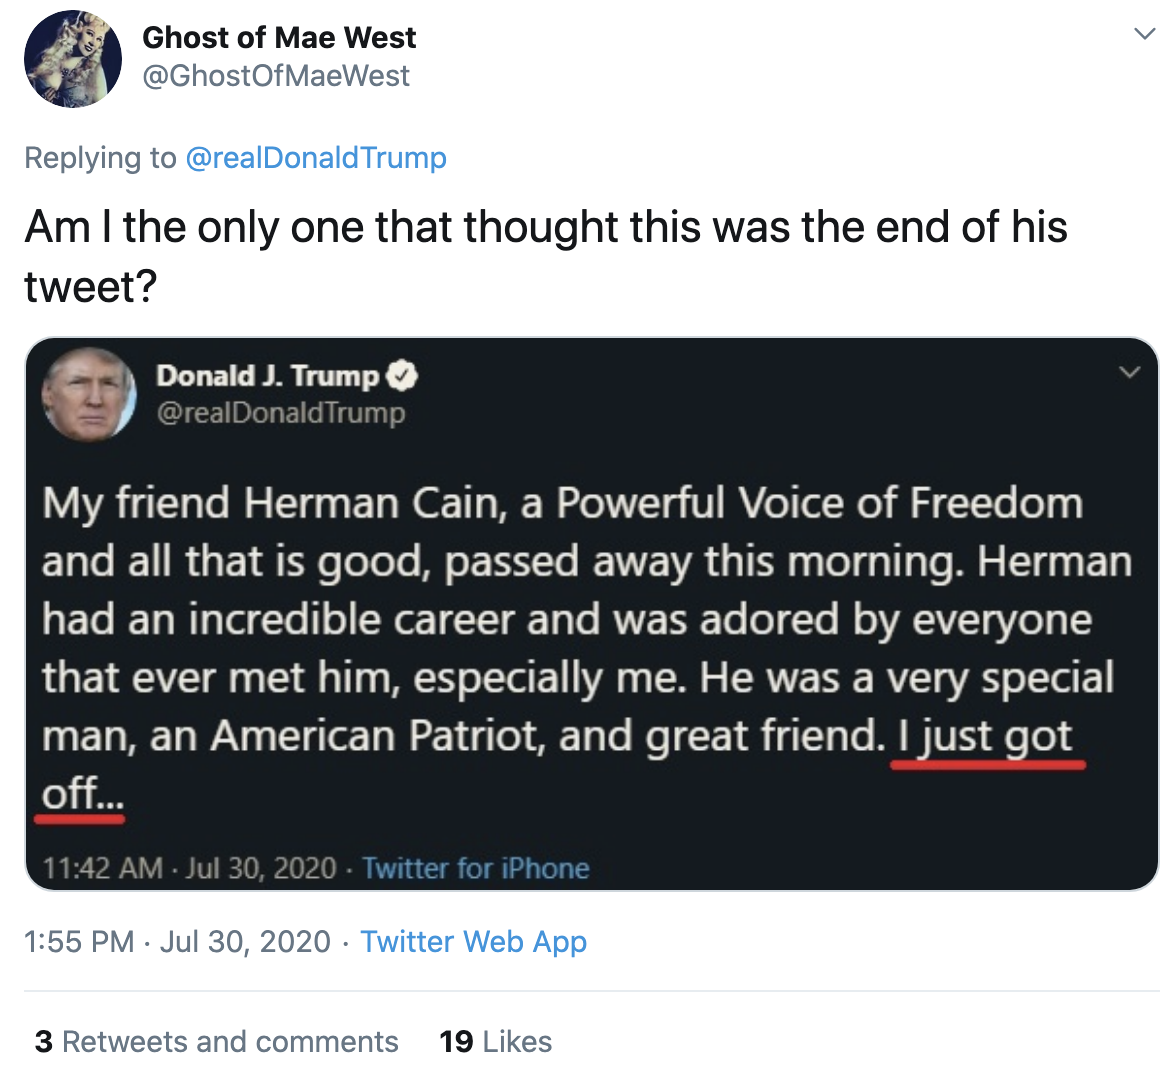 Screen-Shot-2020-07-30-at-2.34.52-PM Trump Finally Tweets About Herman Cain But Gets Roasted In Seconds Coronavirus Featured National Security Politics Top Stories